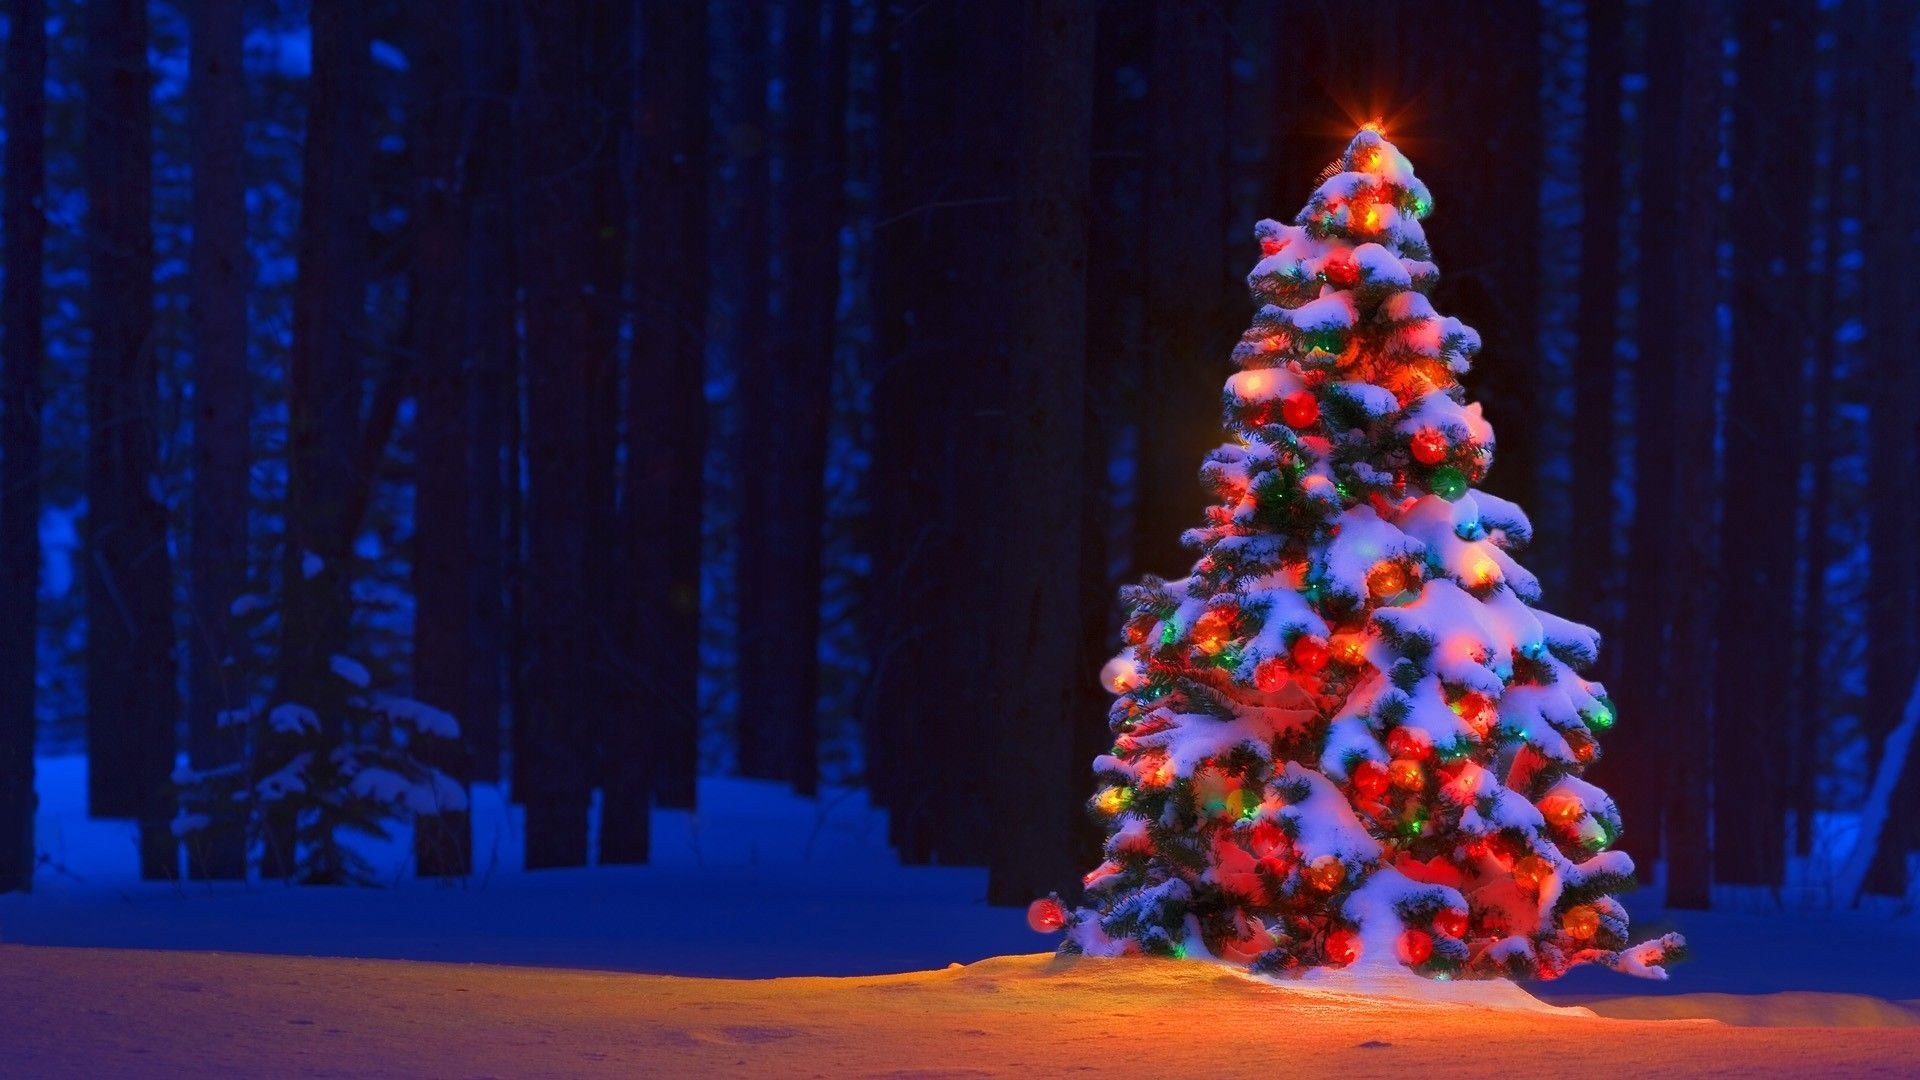 Christmas Tree Desktop Wallpapers Top Free Christmas Tree Desktop Backgrounds Wallpaperaccess